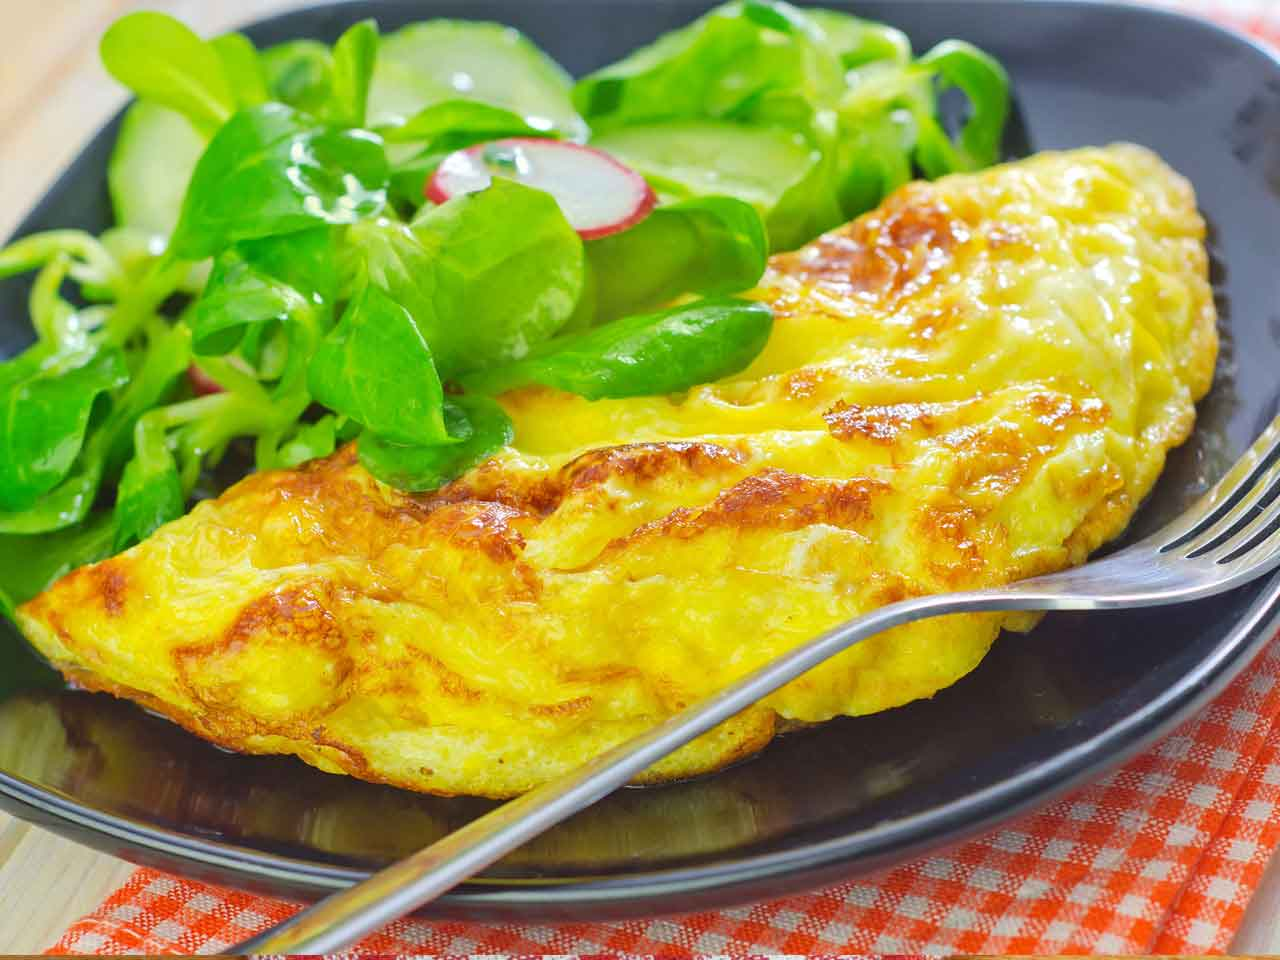 Image result for an omelette